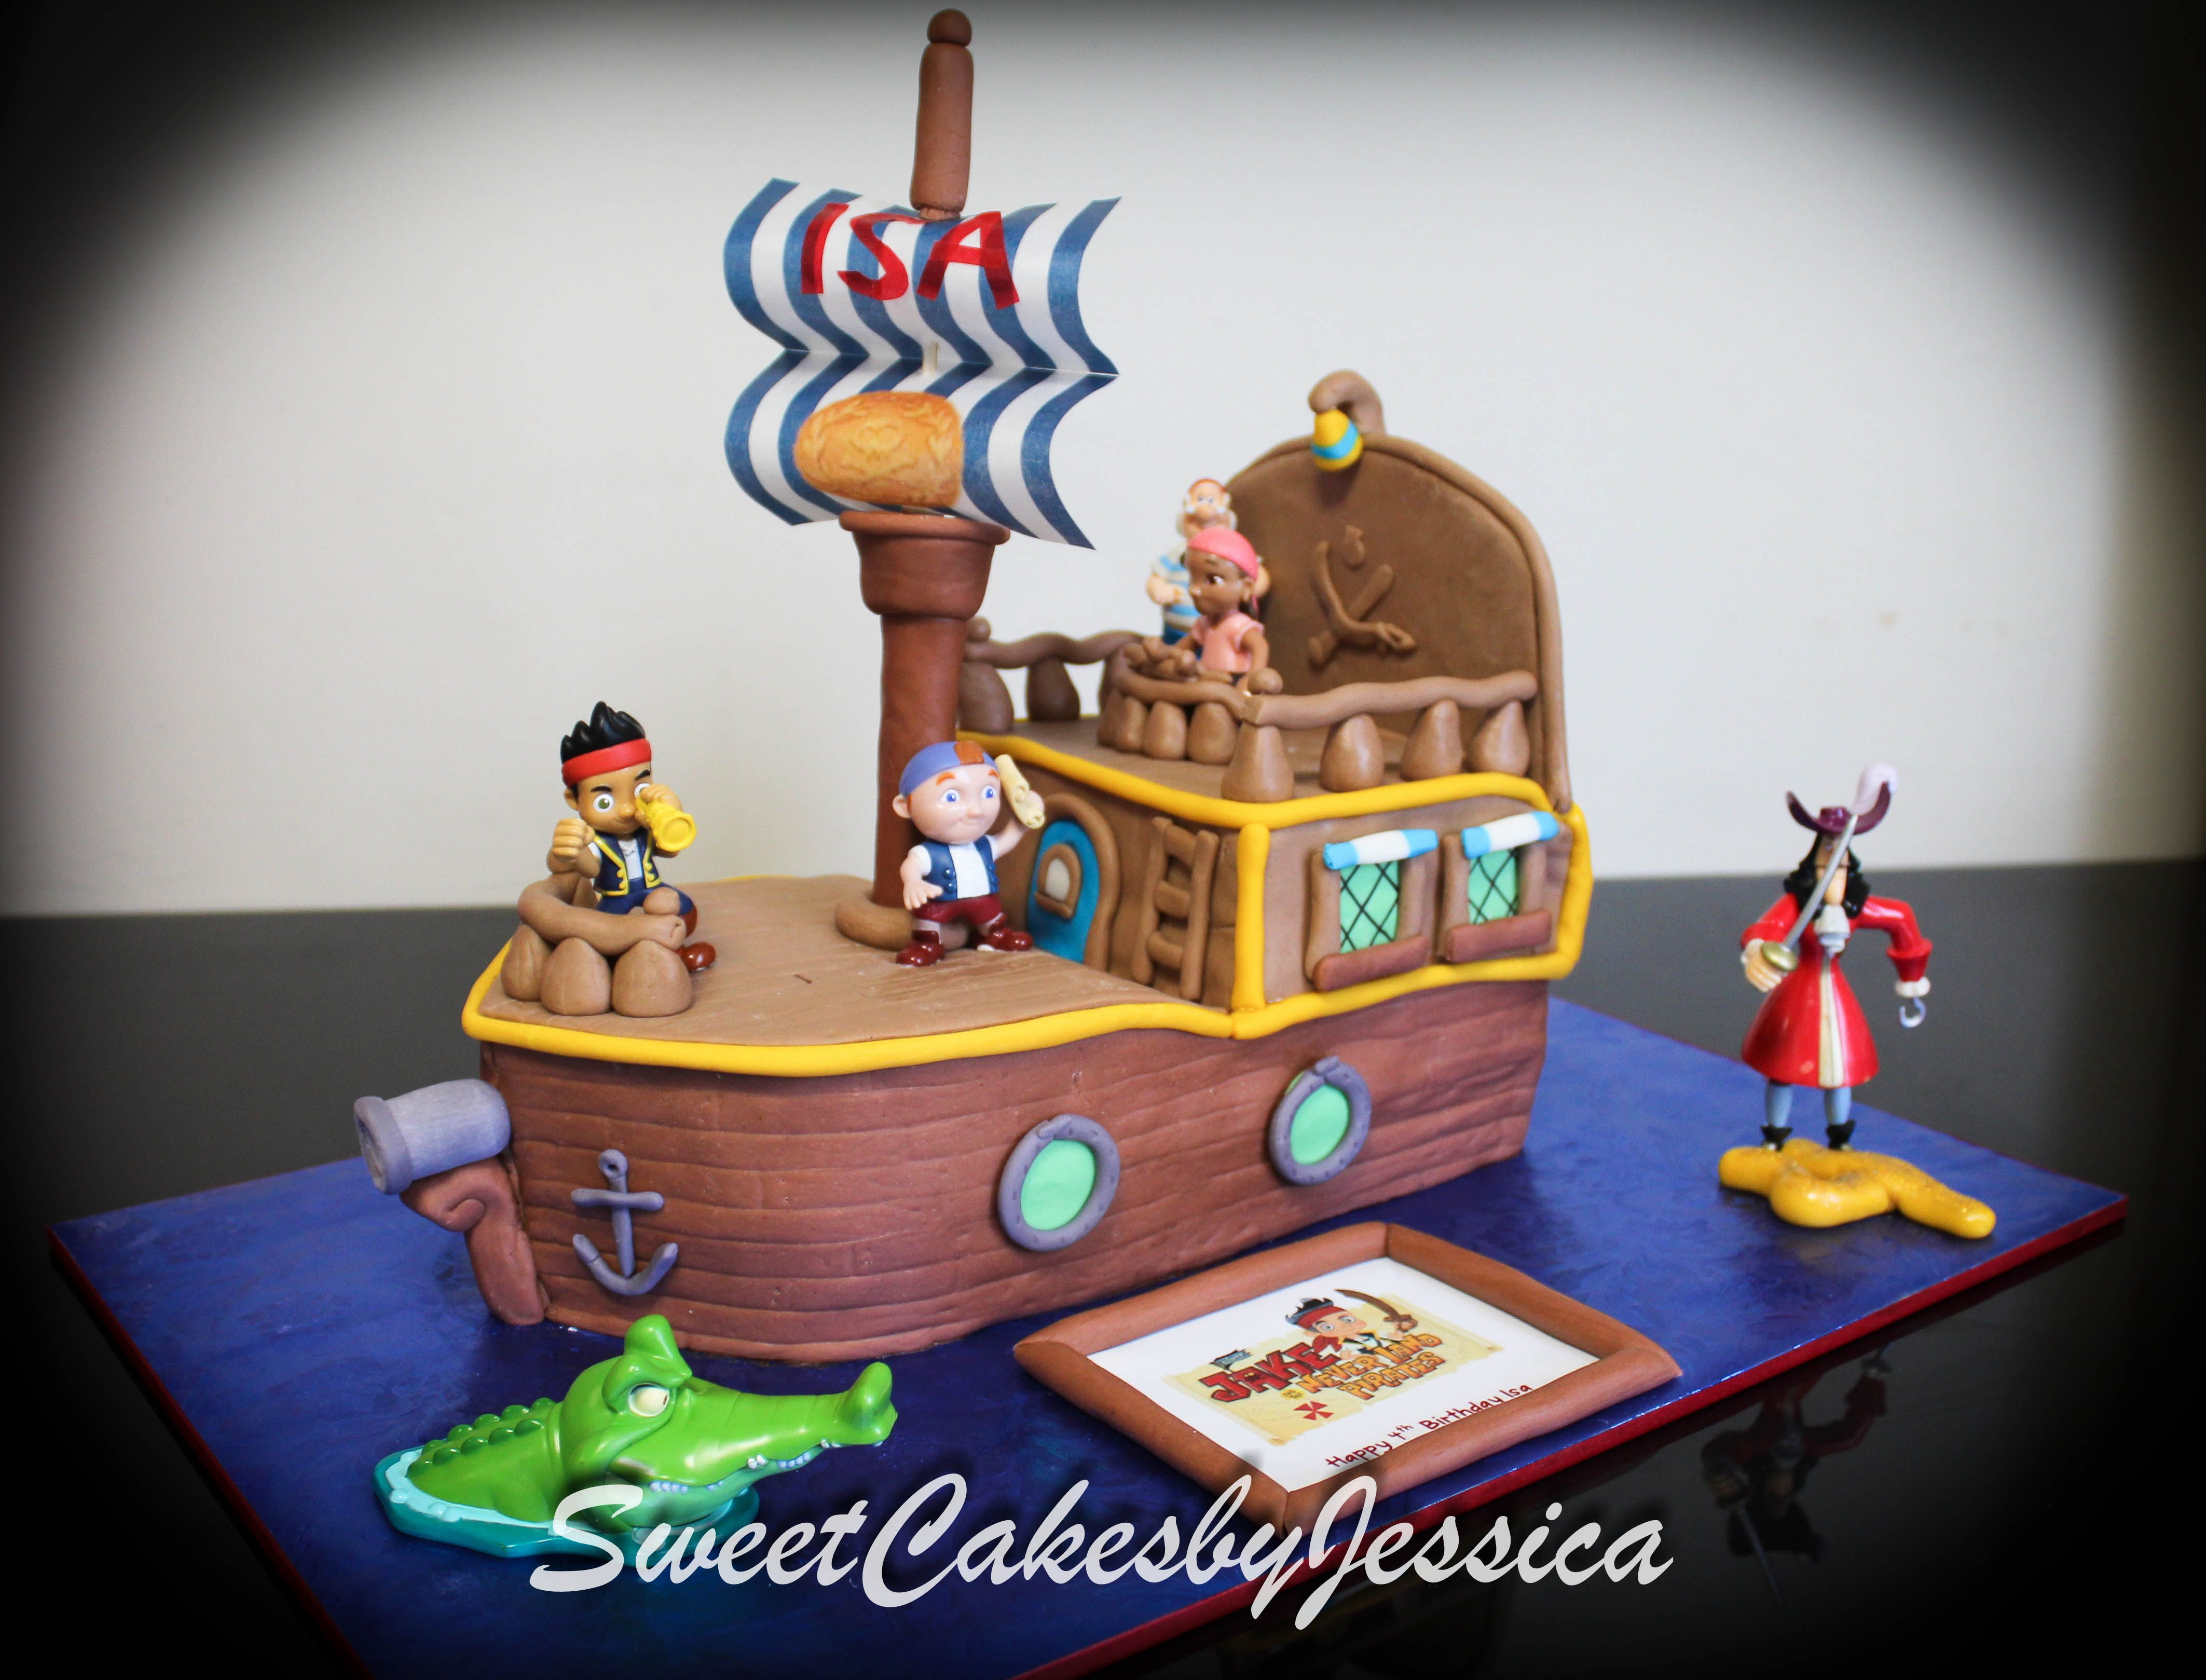 Jake and the Neverland Pirates Captain Hook treasure chest pirate